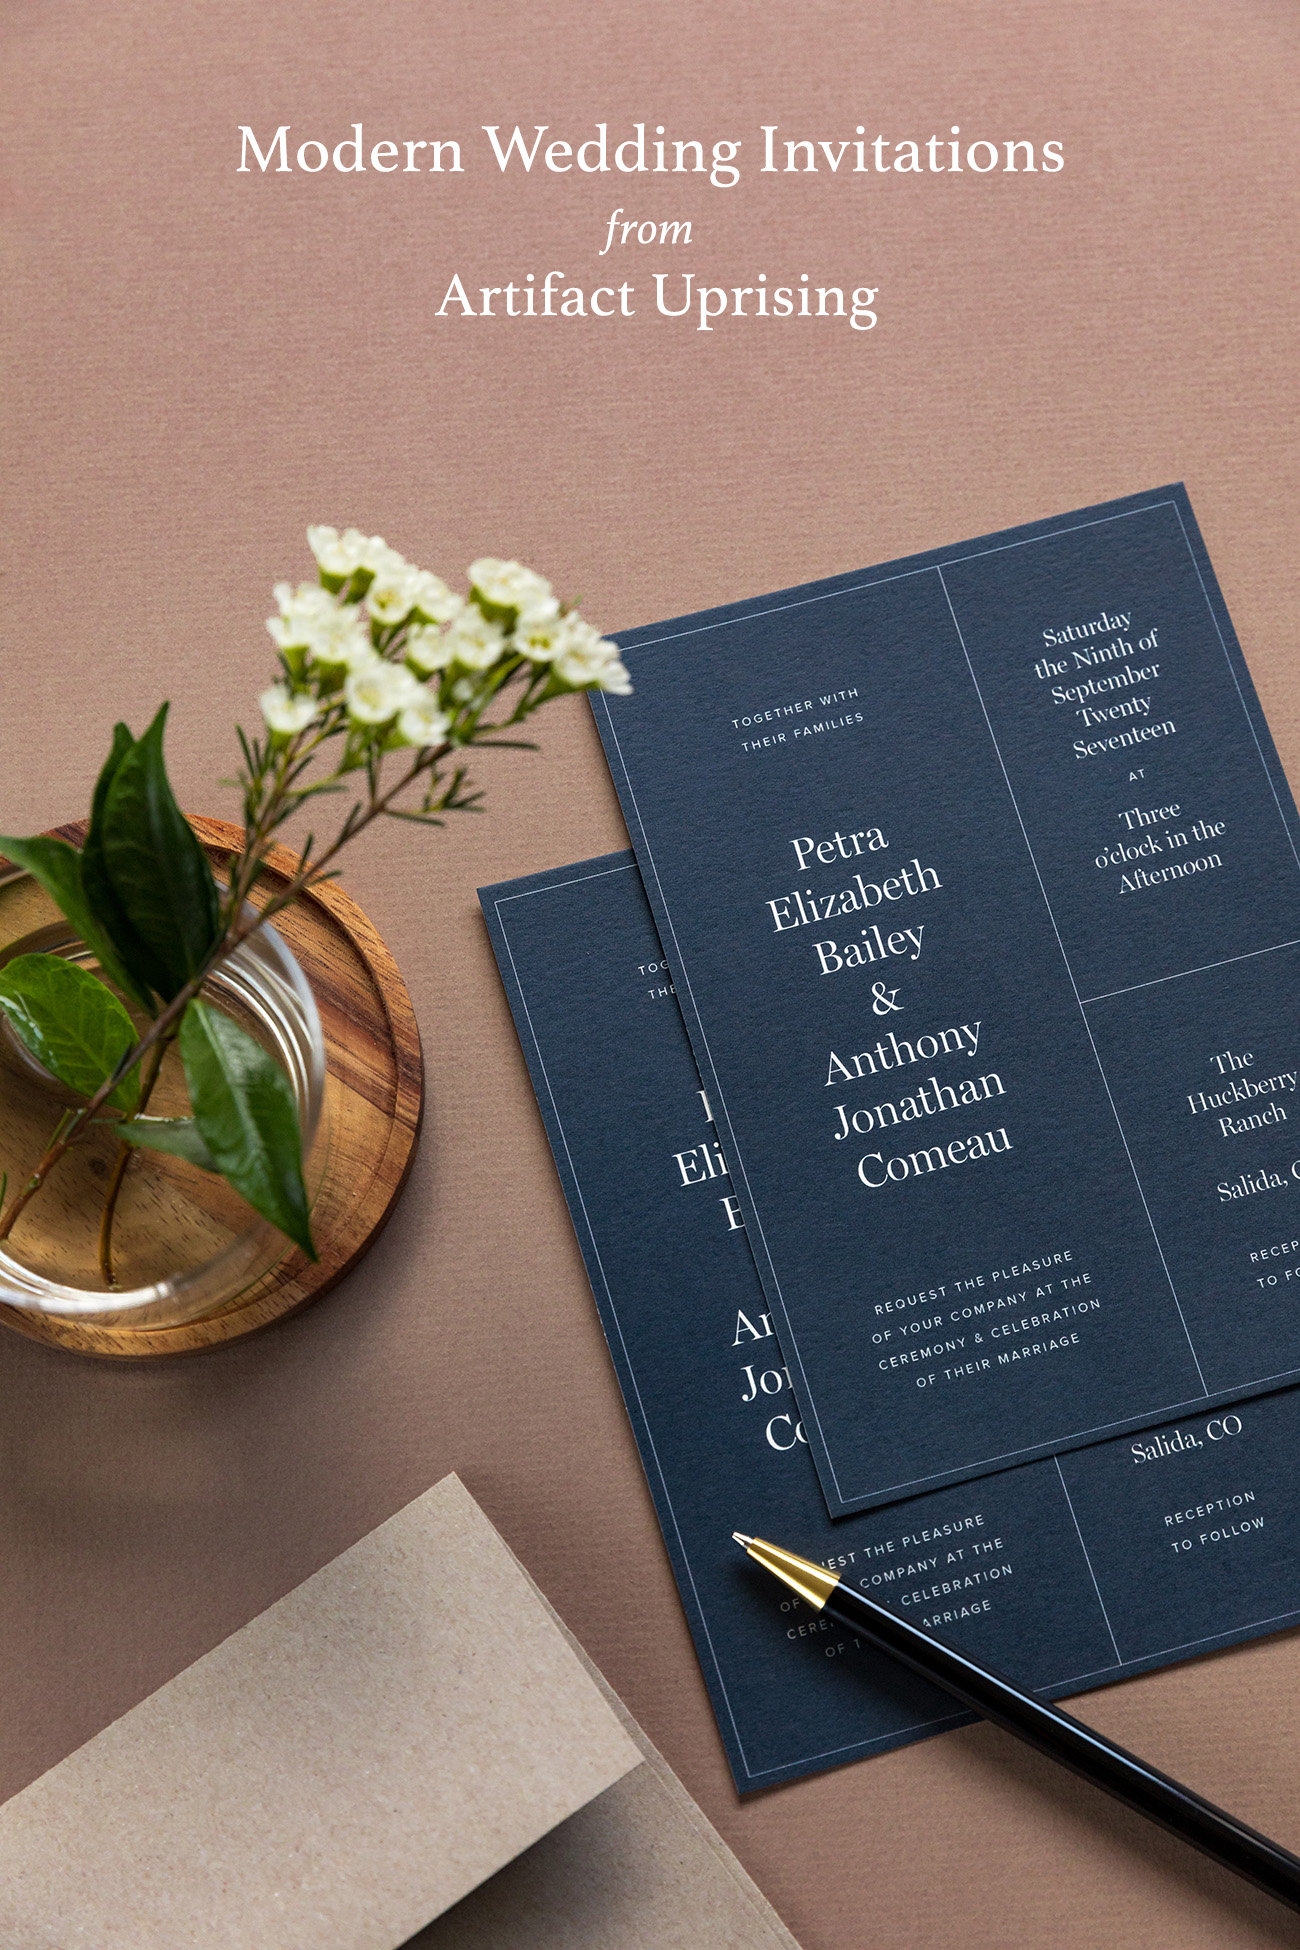 Modern Wedding Invitations from Artifact Uprising